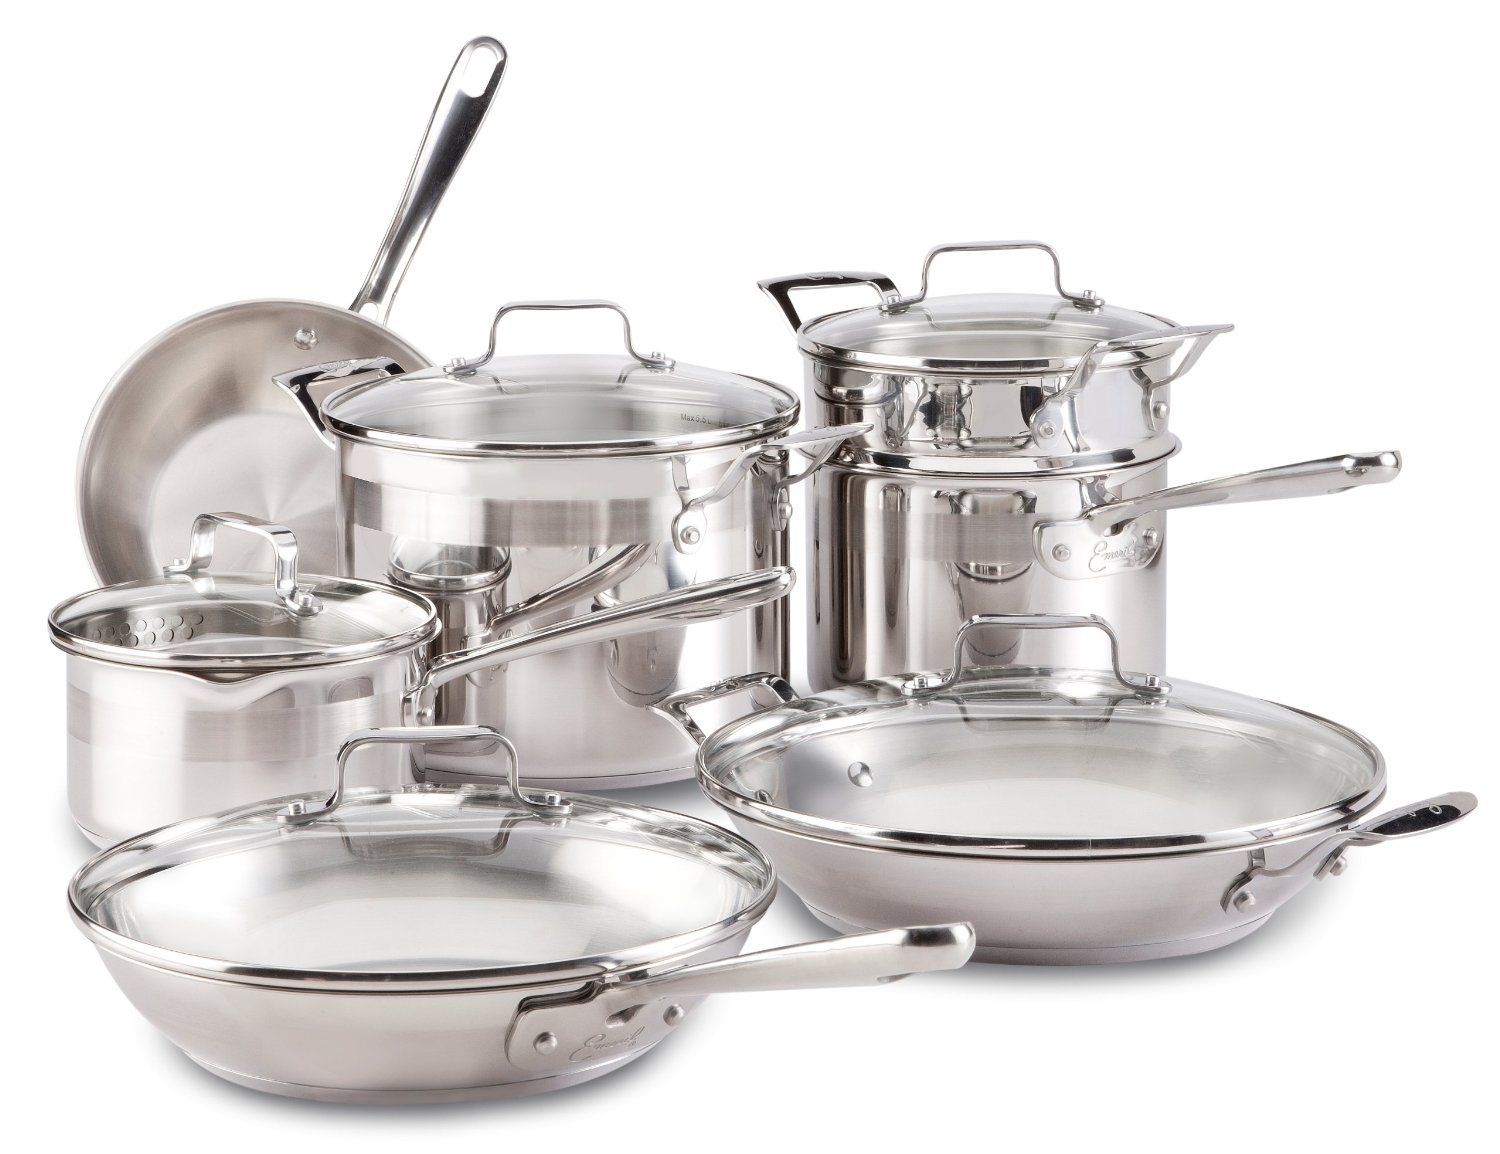 Stainless steel pans reviews